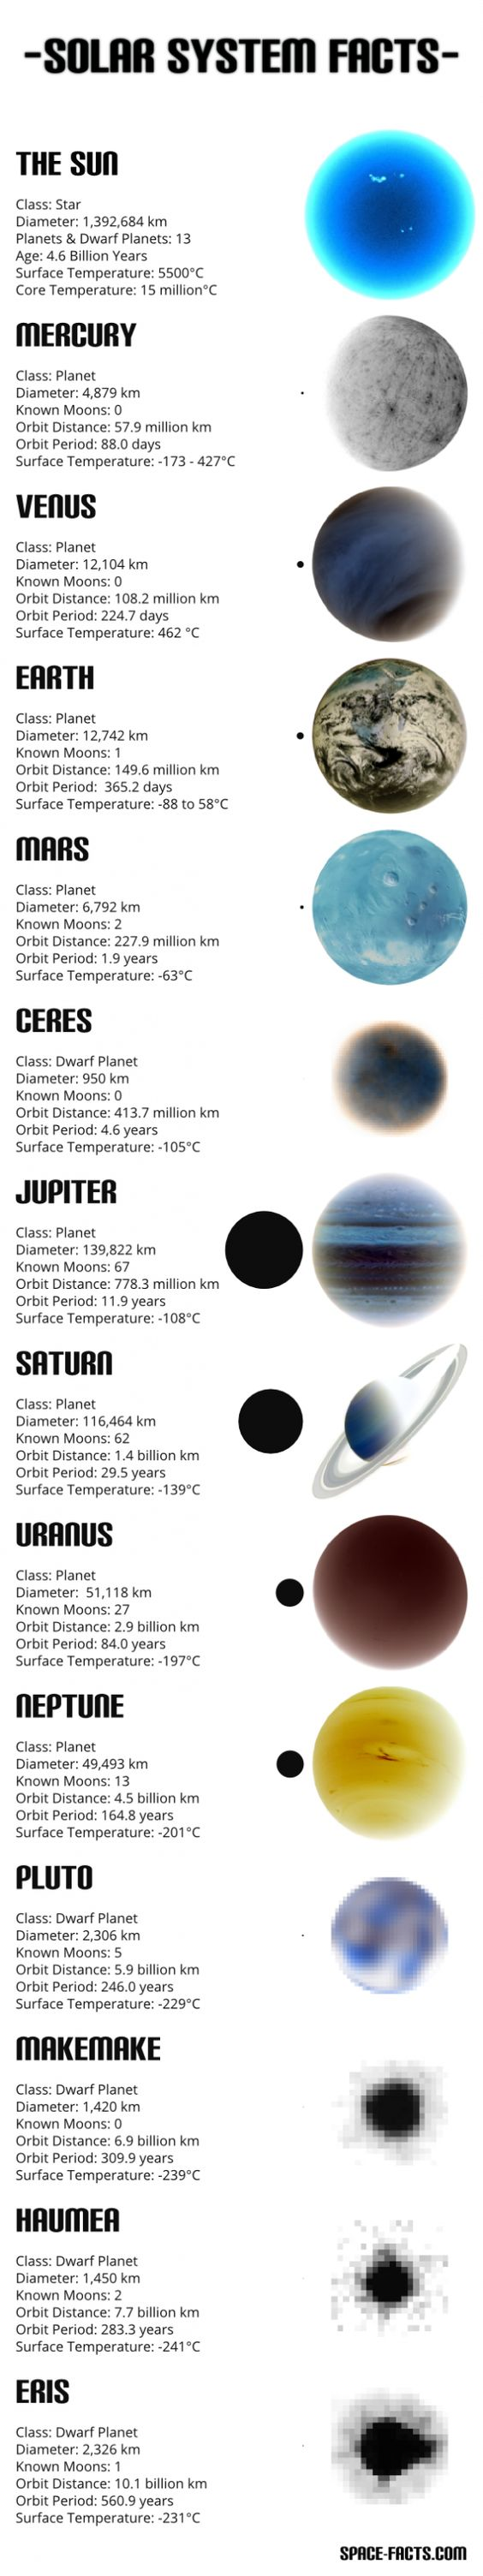 Solar System Information Infographic | Science ...